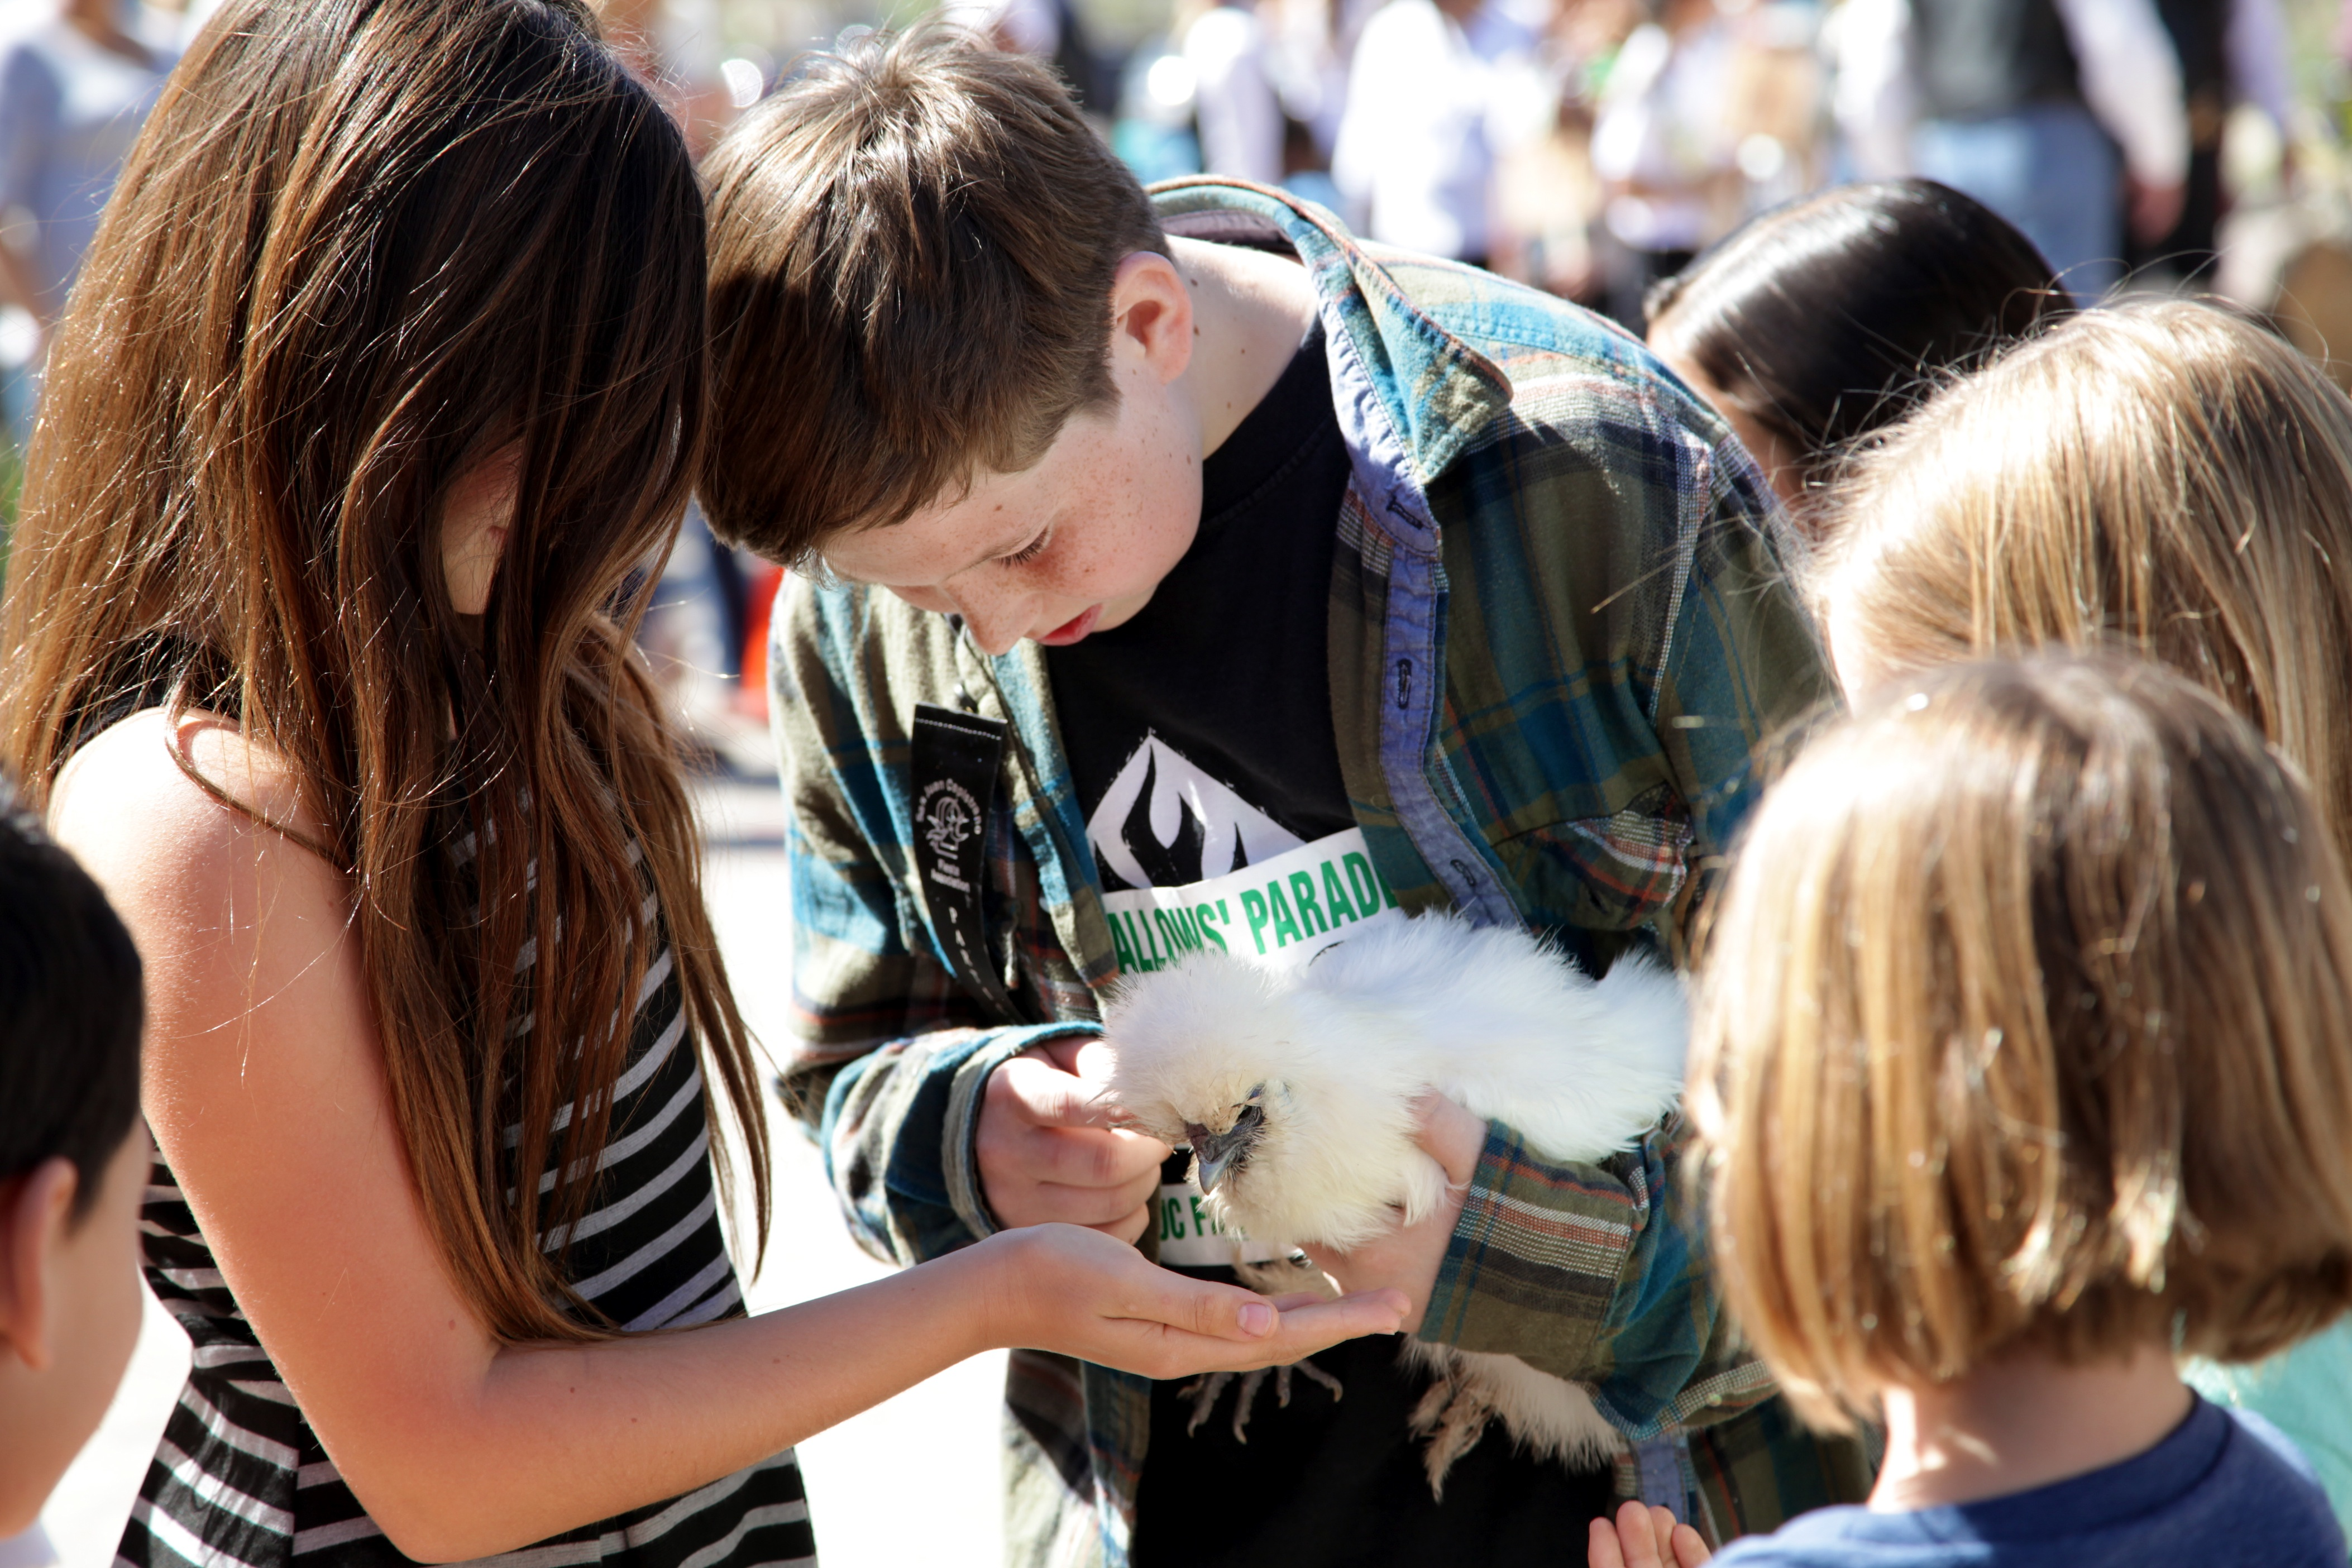 Brayden Windes lets other kids feed his pet silkie chicken. Photo by Brian Park